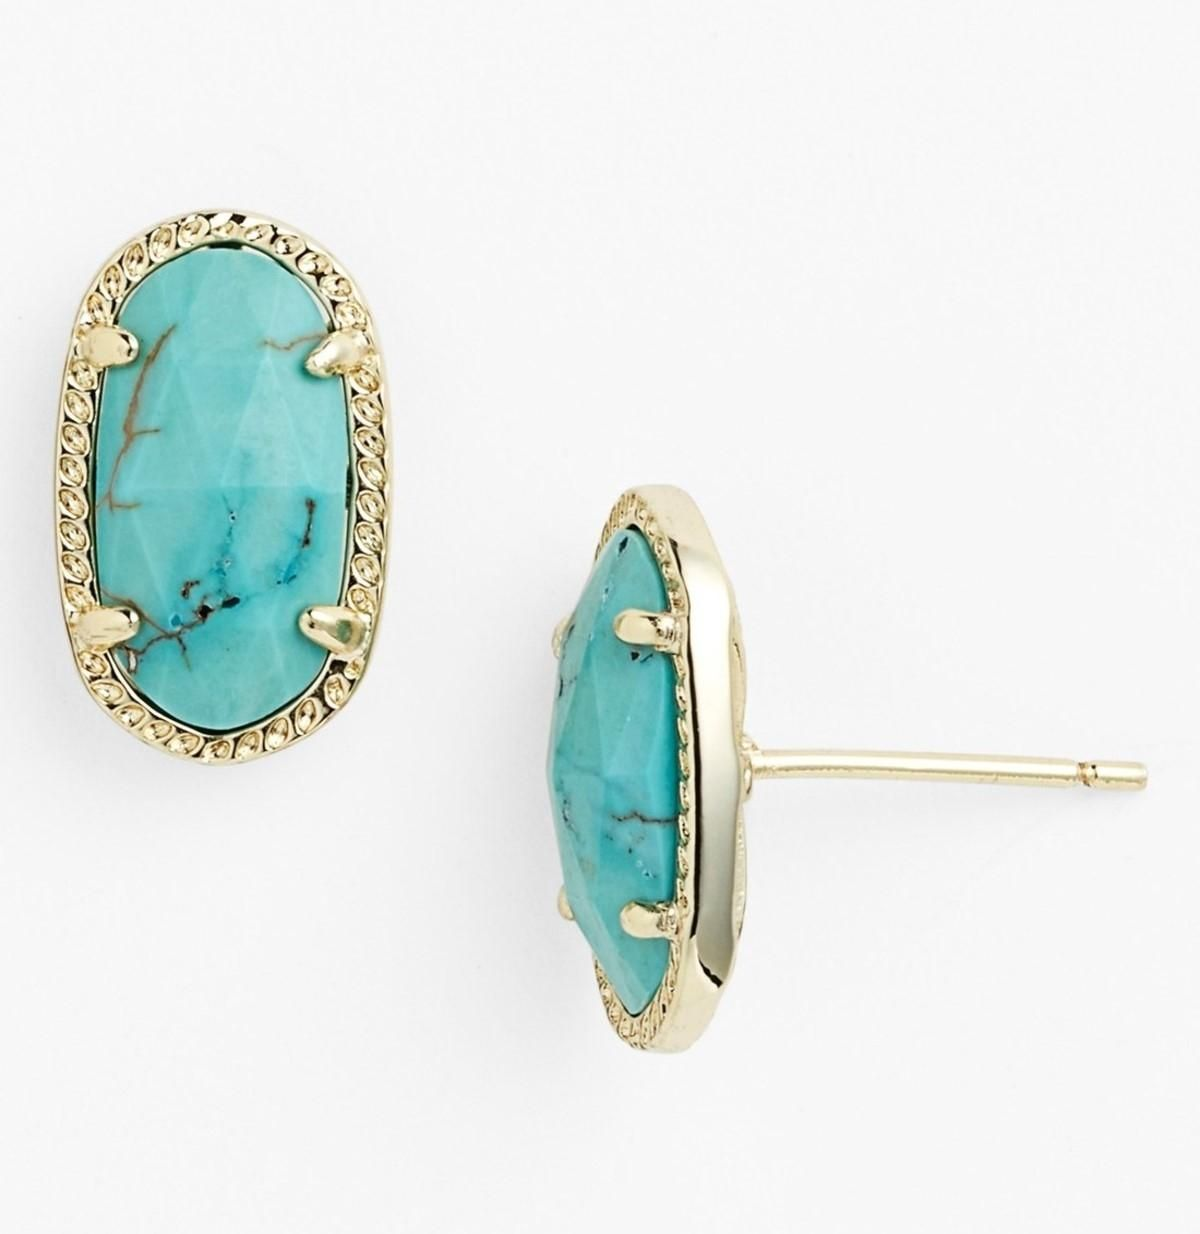 496fa48f8 Free shipping and guaranteed authenticity on NEW Kendra Scott 'Ellie' Small  Oval Stud Earrings, Turquoise, Gold, 4217709433 at Tradesy.